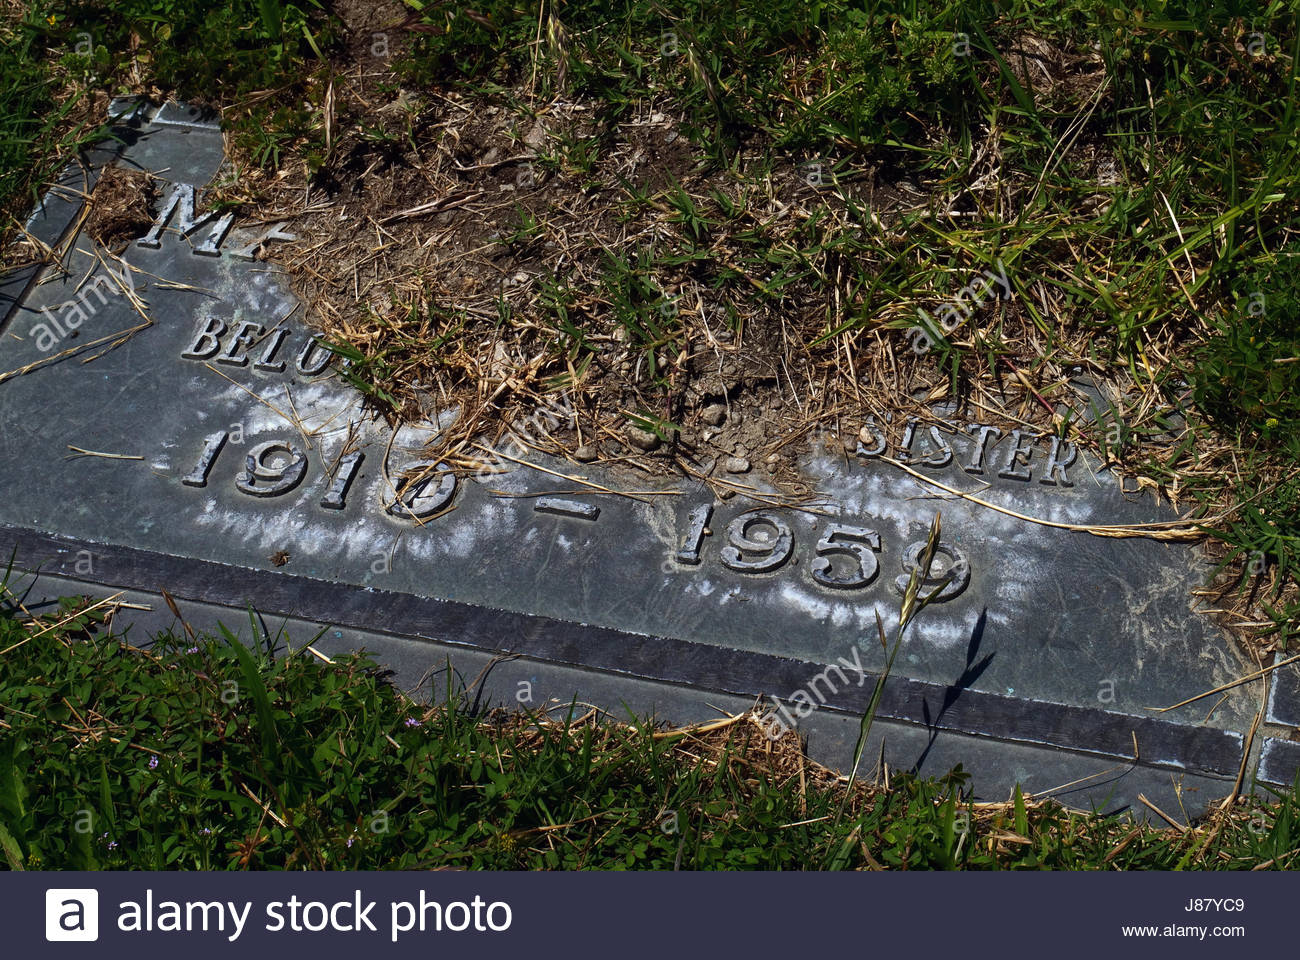 Neglected headstone of a beloved sister. - Stock Image